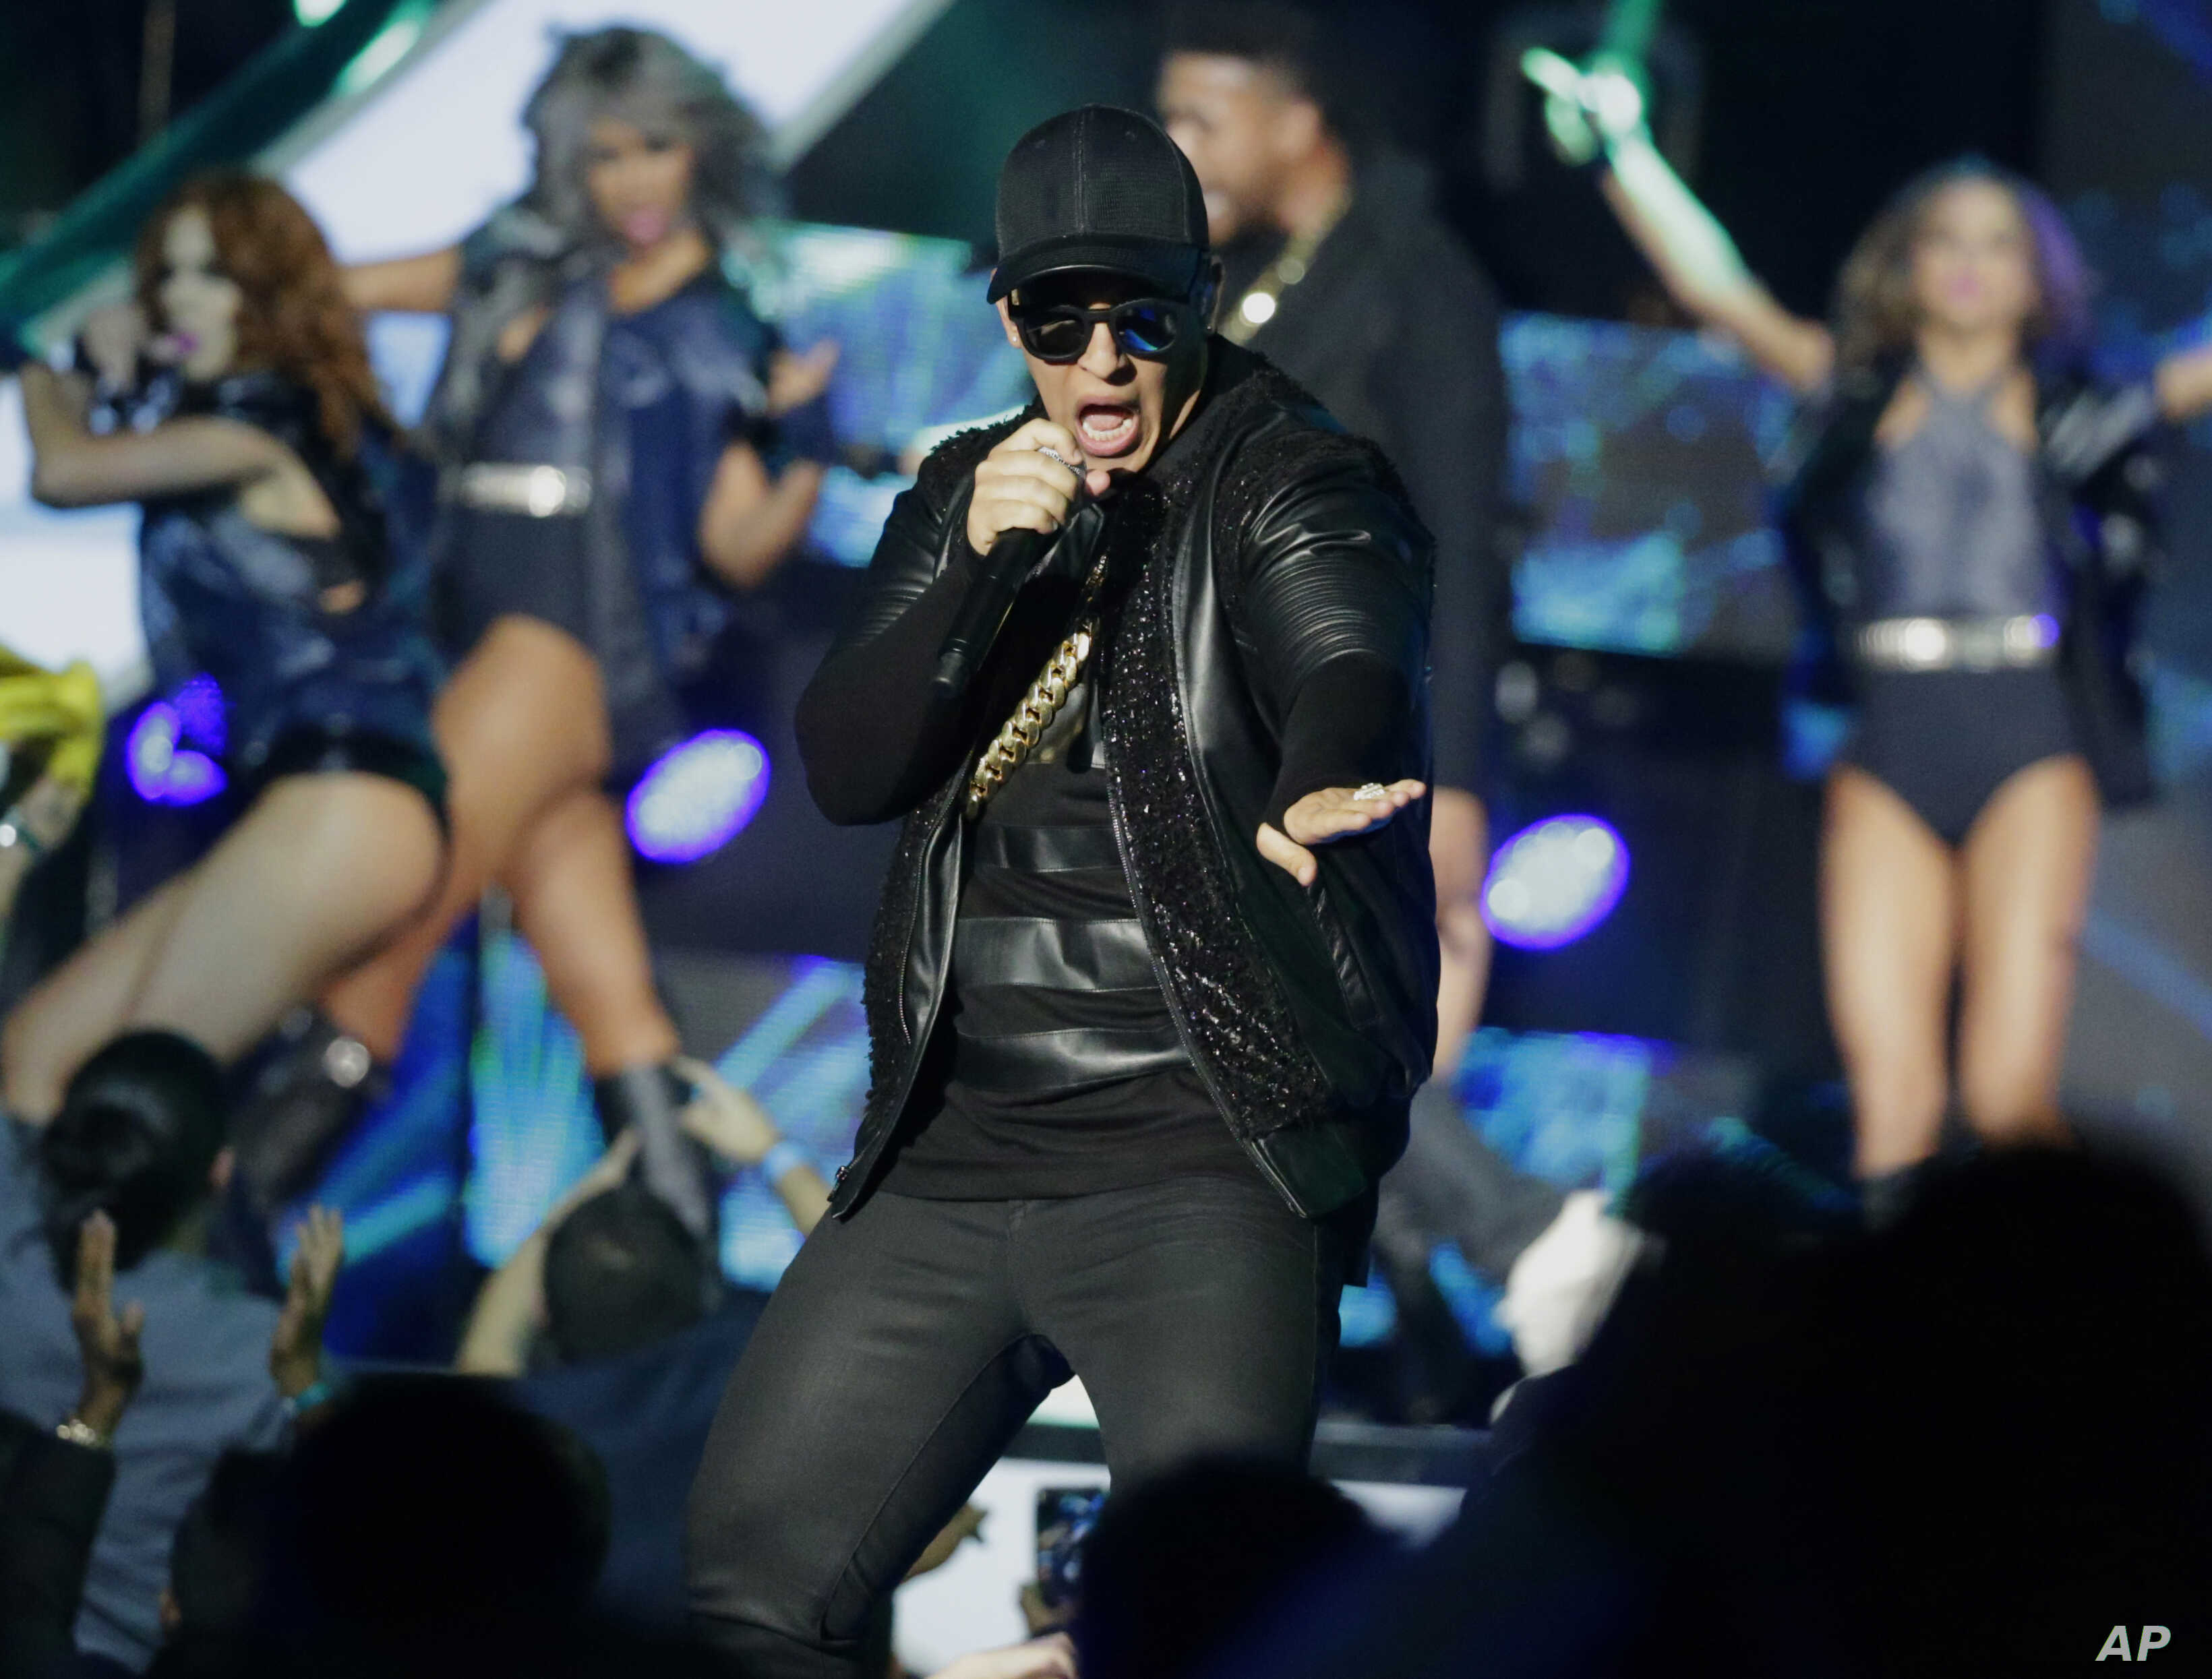 Daddy Yankee: Music Success Online Isn't a Surprise | Voice